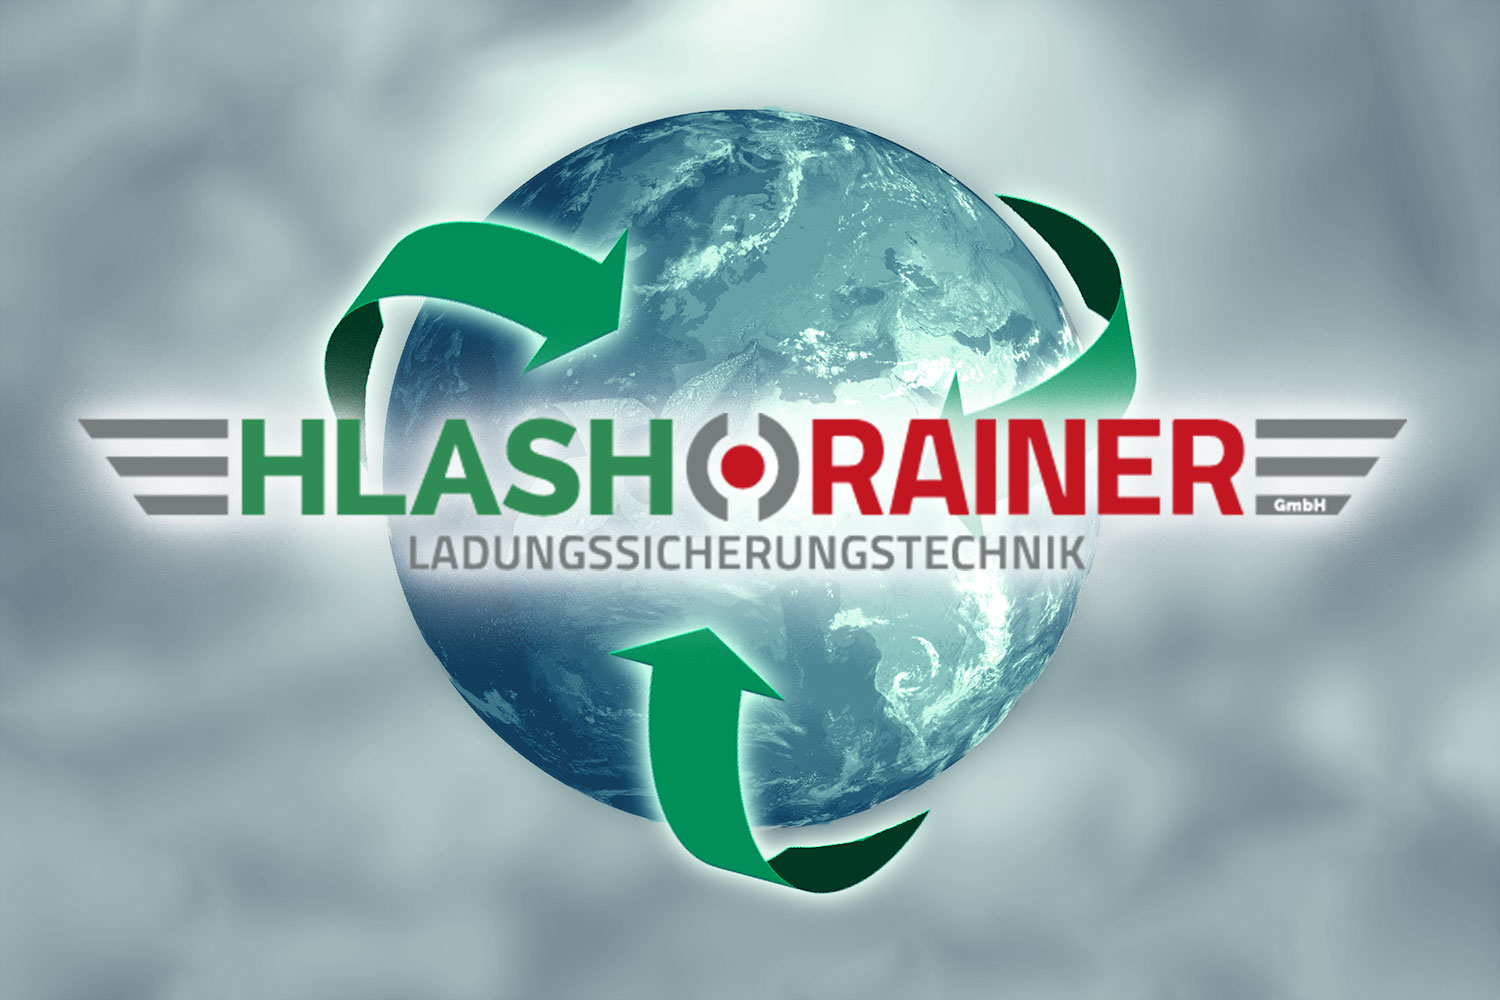 HLash & Rainer GmbH Sustainability